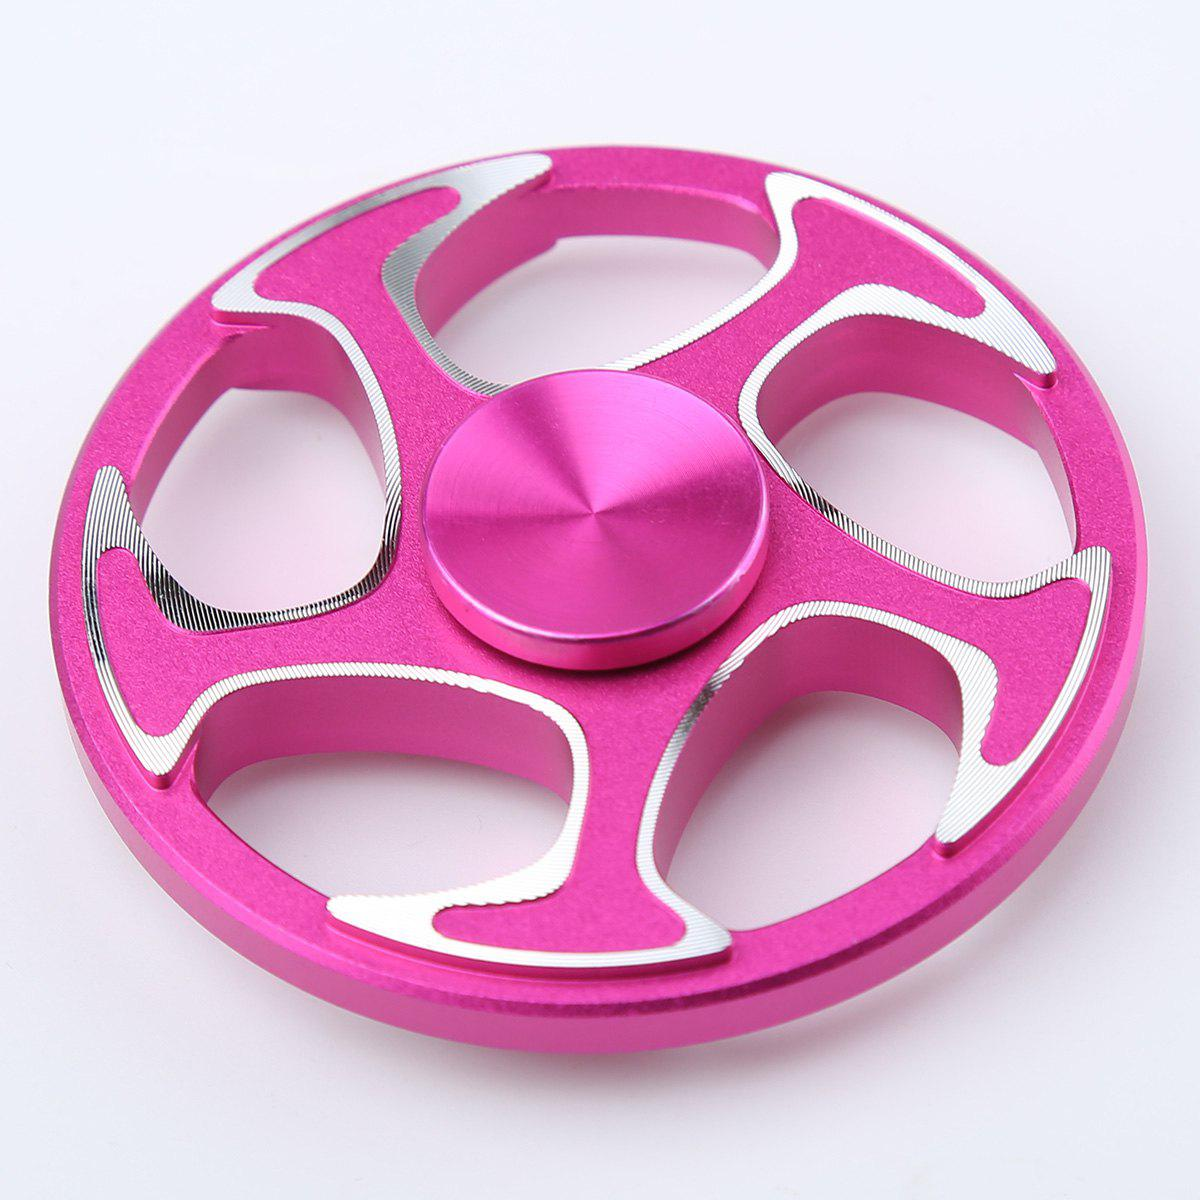 Wheel Aluminium Alloy Finger Gyro Hand Spinner - ROSE MADDER 6.3*6.3*1.5CM